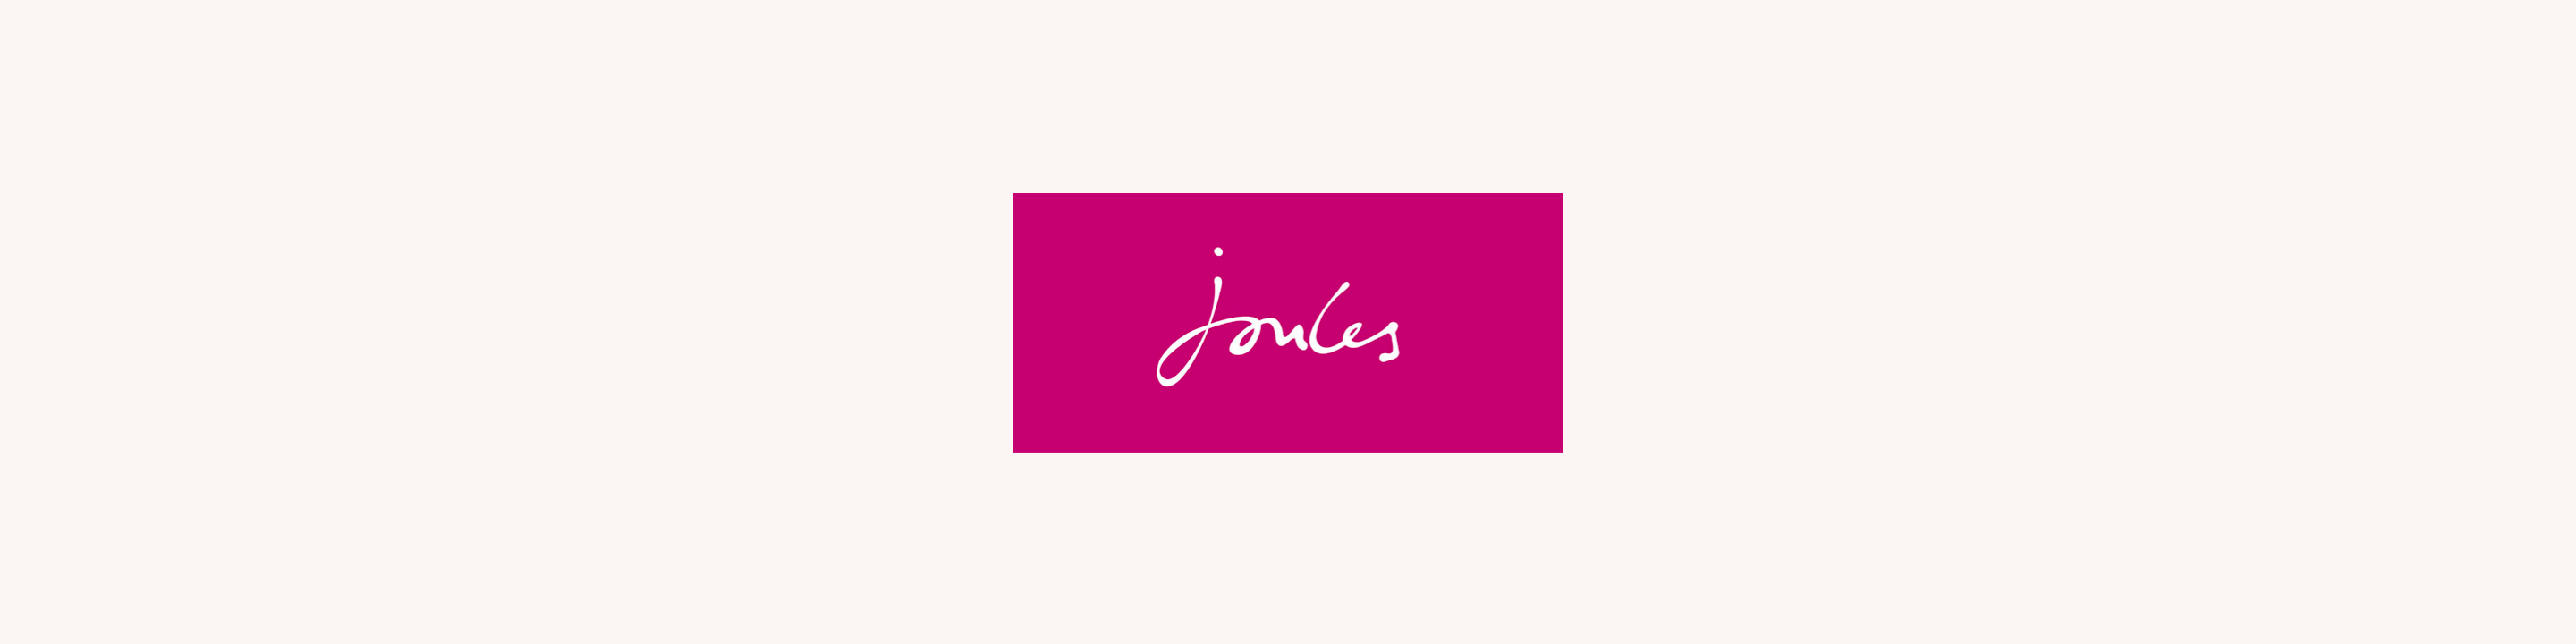 Joules logo in white on a pink square